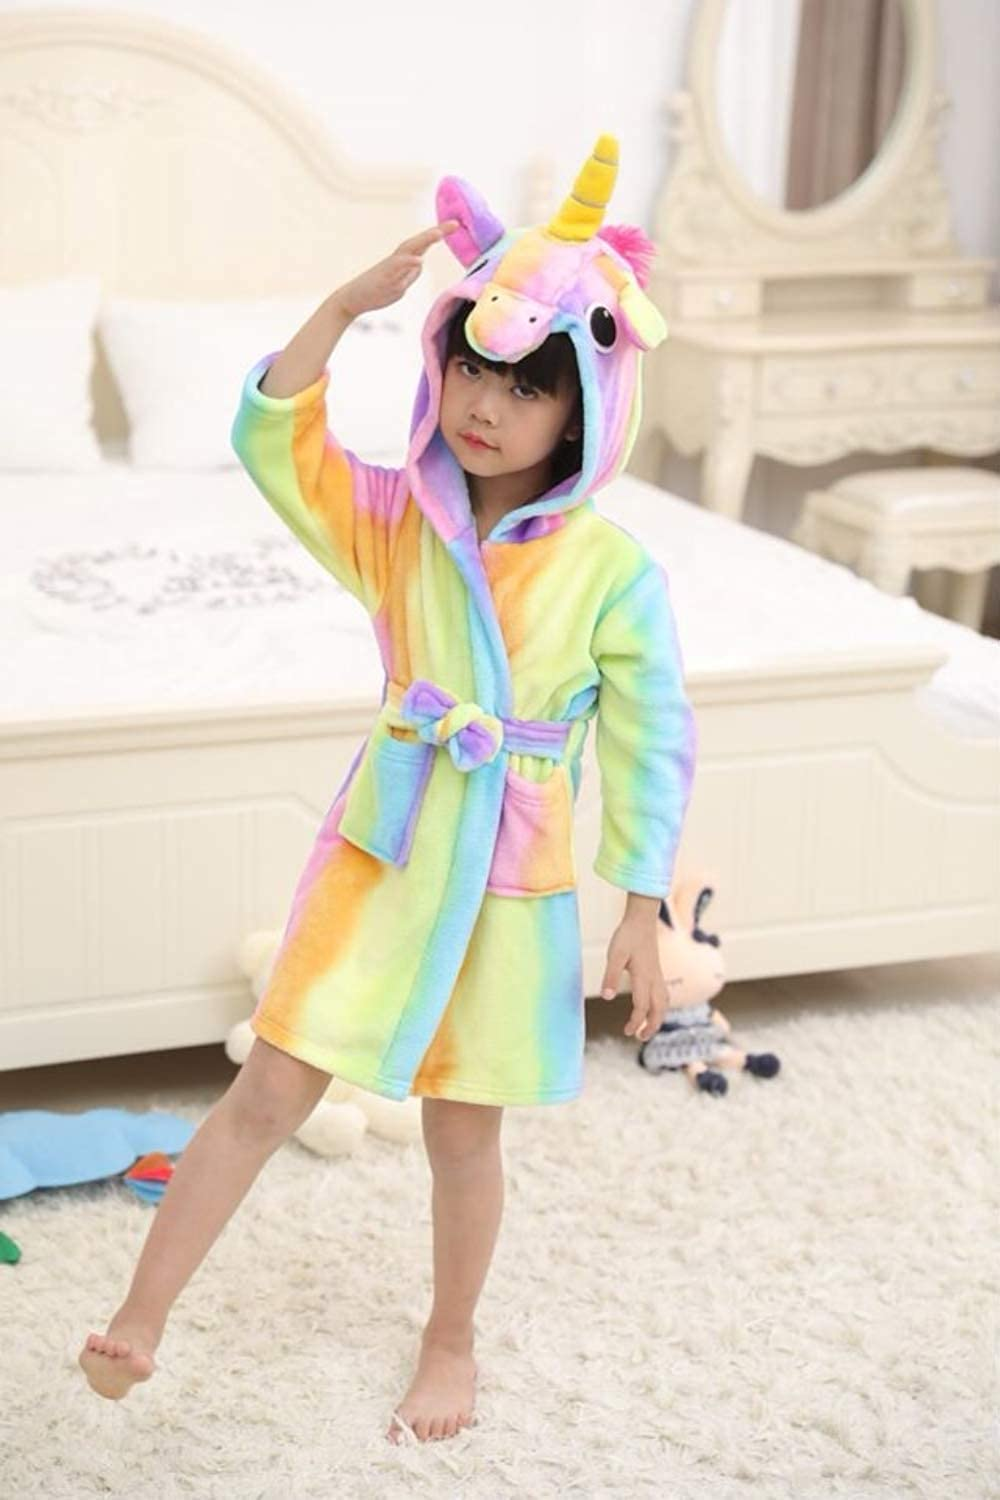 Toddlers Luckyhappykids Soft Hooded Unicorn Bathrobes Rainbow Unicorn, 120 for 4 Years at Height 39.37/'/'-41.34/'/' Girls Flannel Sleepwear Pajamas Comfortable Loungewear for Kids